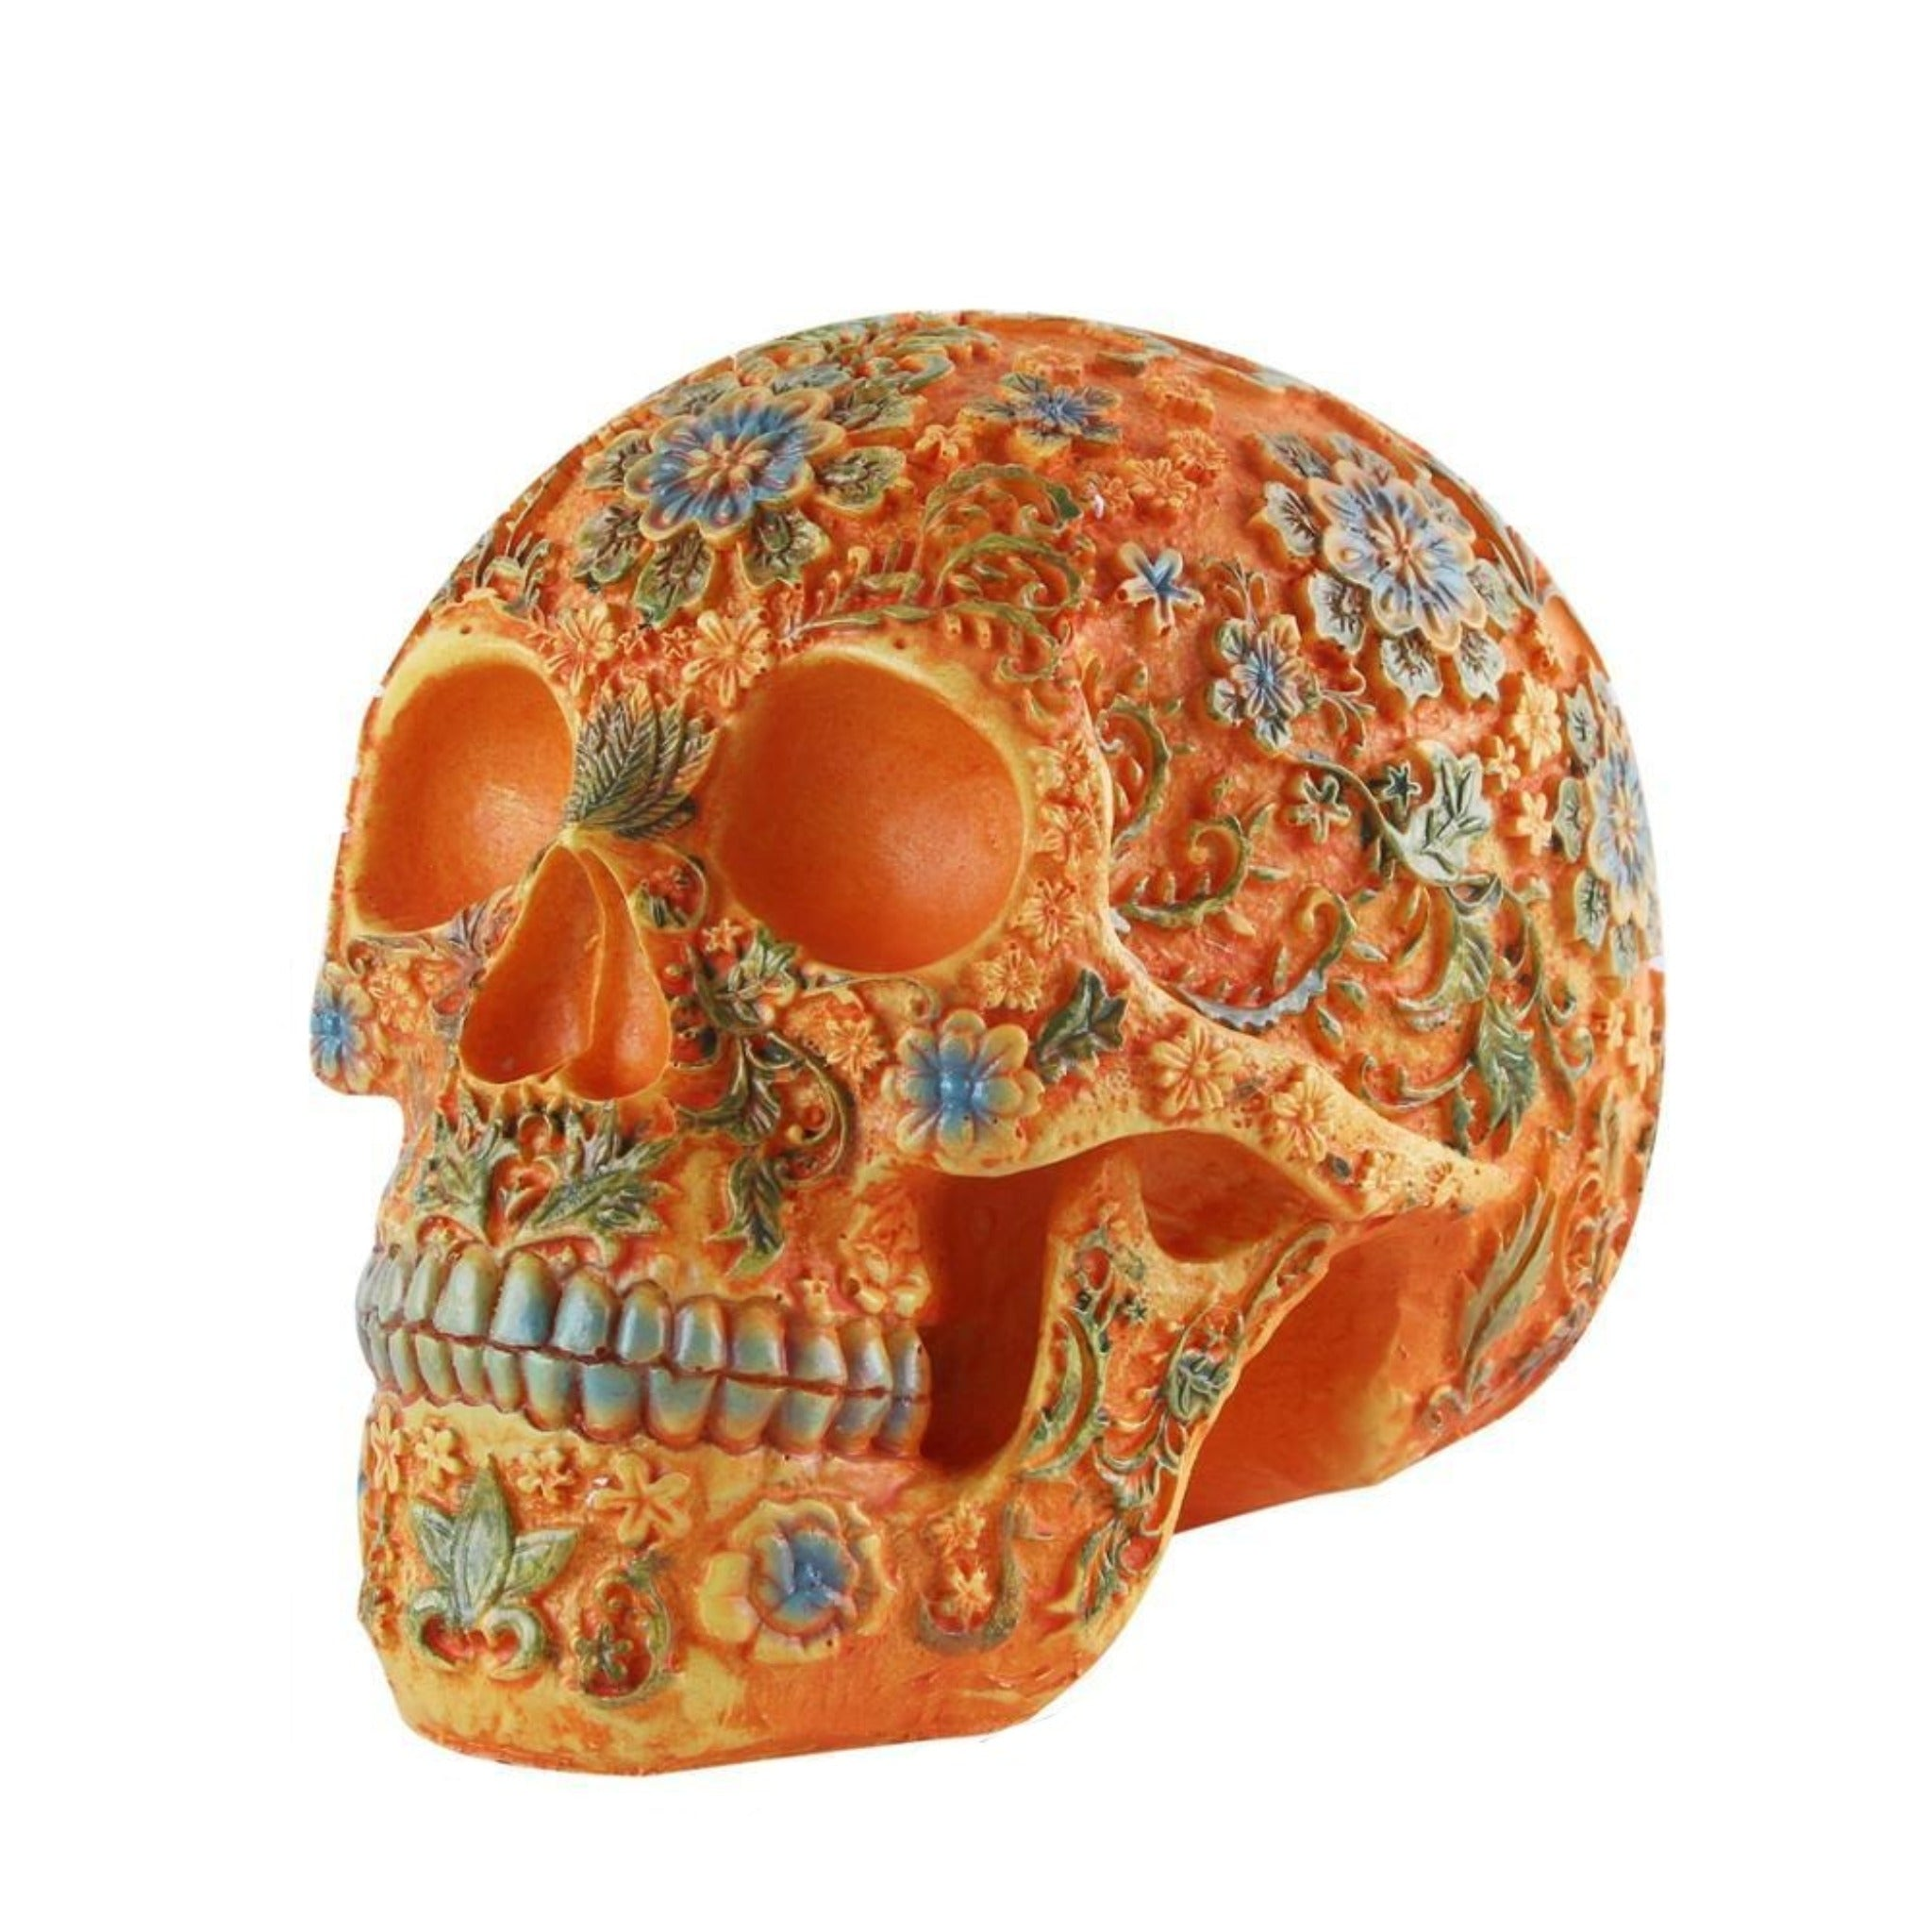 Skull Head Ornaments